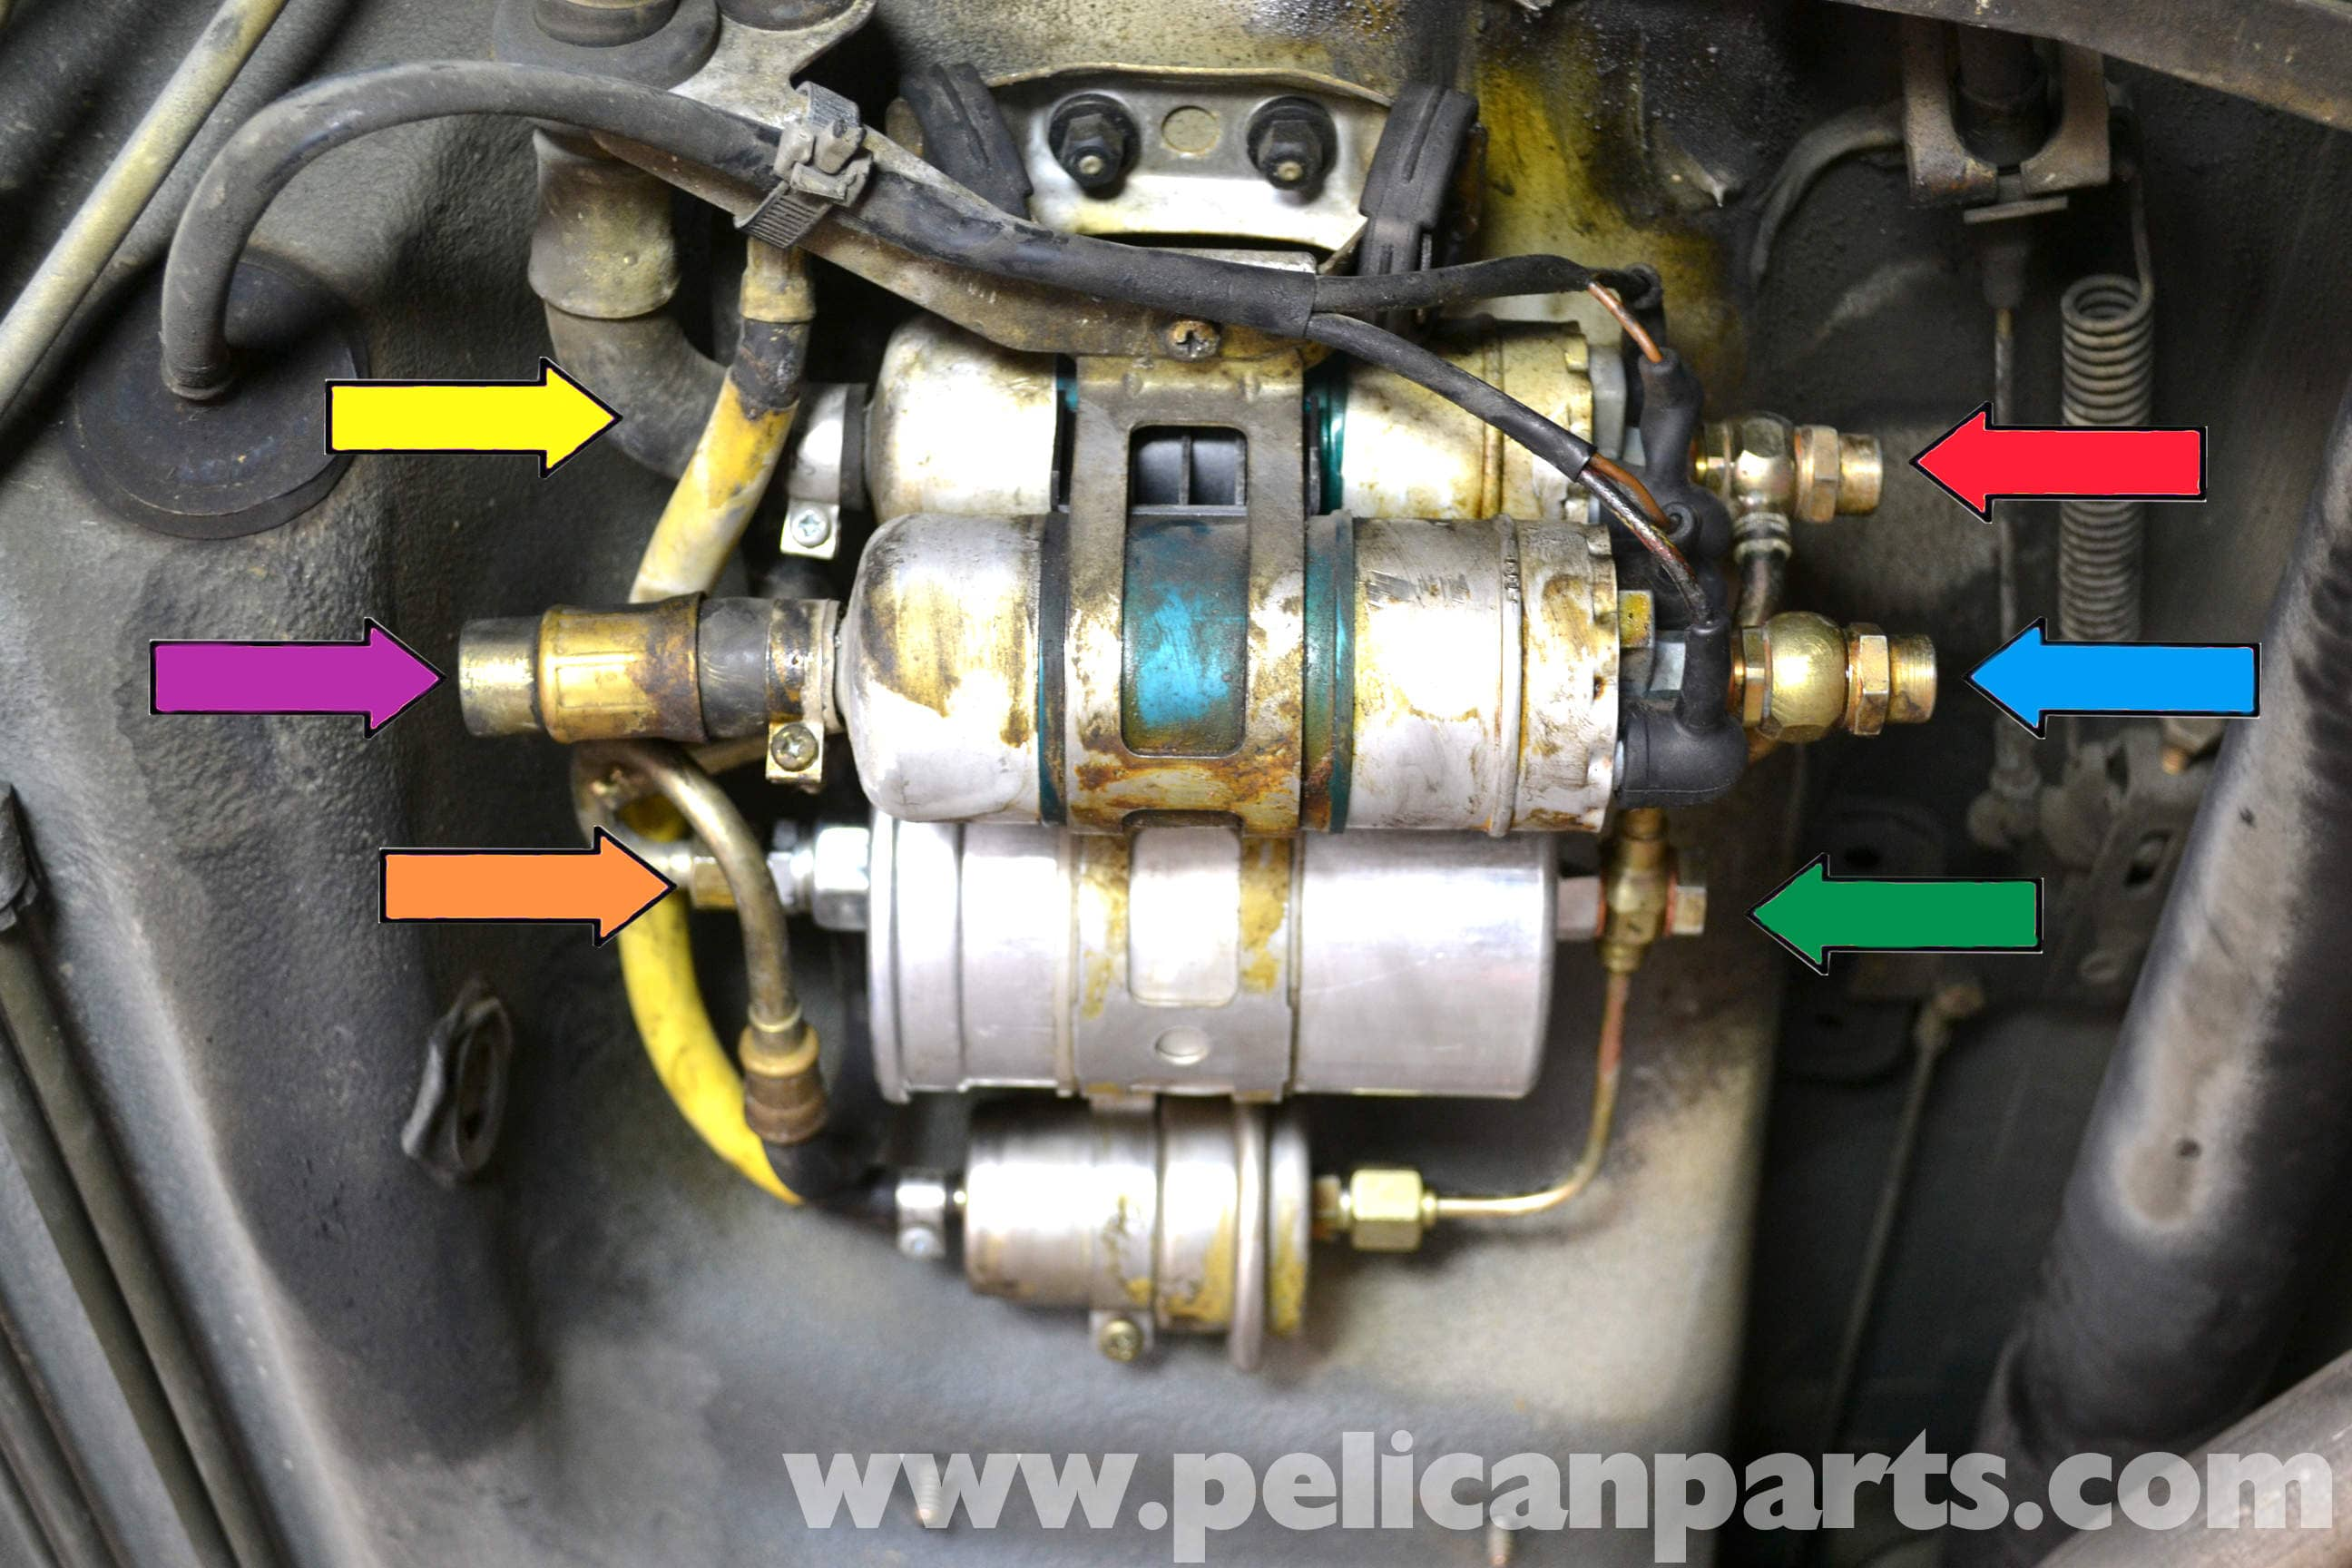 Mercedes-Benz 190E Fuel Pump Replacement | W201 1987-1993